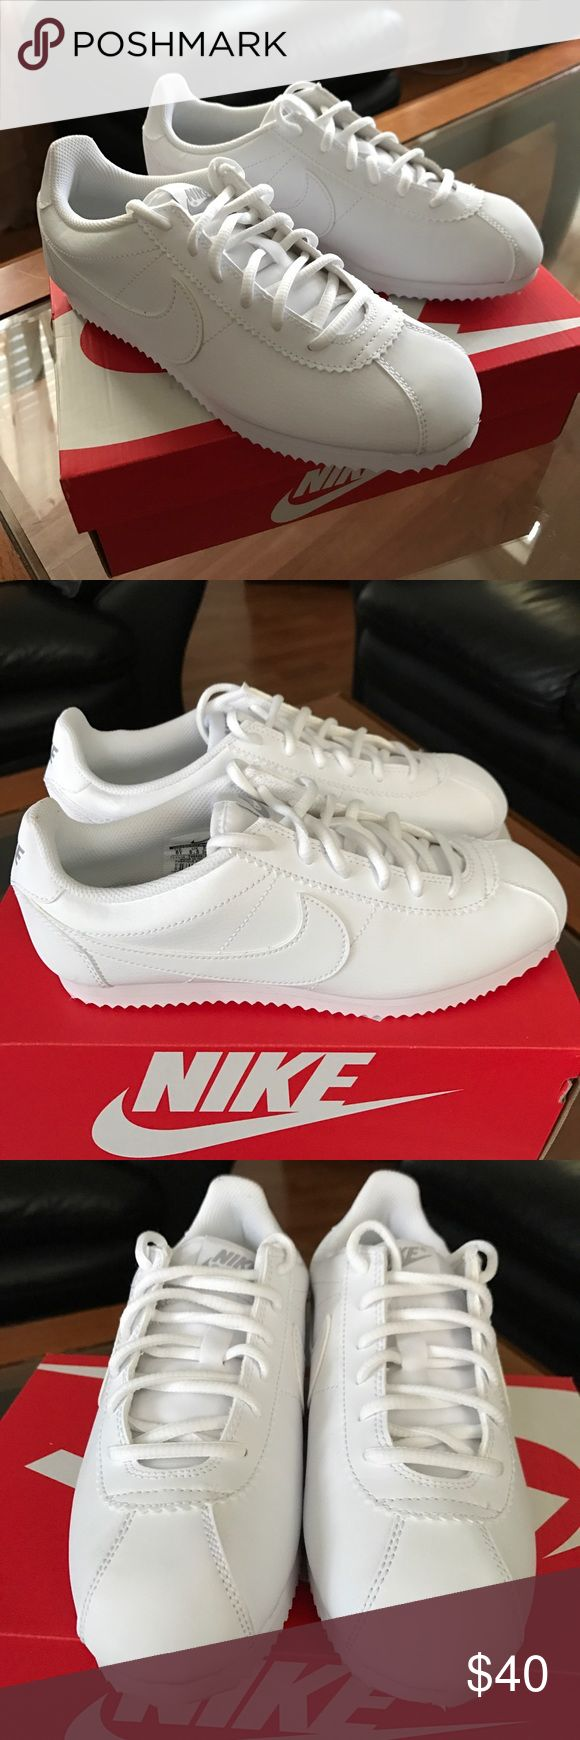 Nike Cortez (Youth SZ 6Y, also fits Women's SZ 7) Girls/Kids SIZE 6Y. These are a pair of Nike shoes in the style Cortez in all white. They are brand new and will ship in box. They have only been tried on once and are in perfect condition. They are a SIZE 6Y in girls but will also fit an adult women's size 7. The construction allows them to be very lightweight and comfortable for walking. Nike Shoes Sneakers